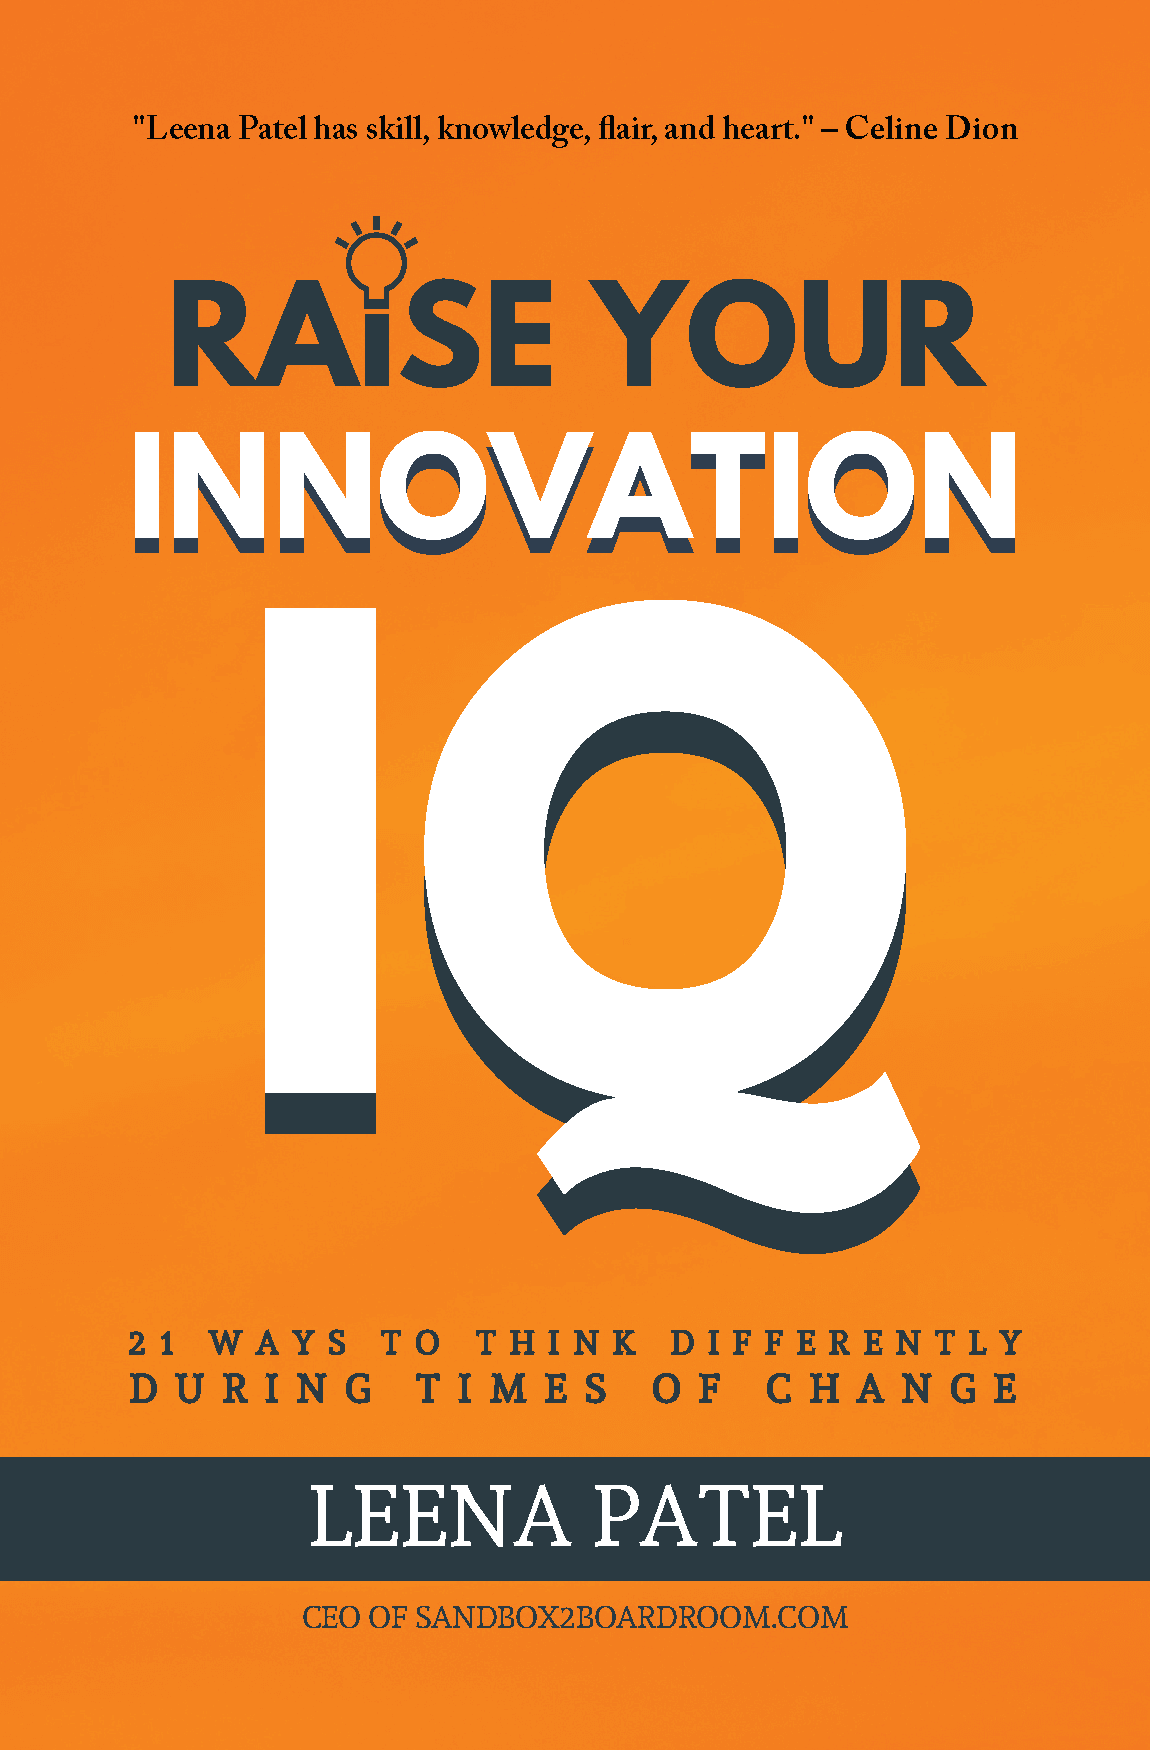 Raise Your Innovation IQ [E-Book]